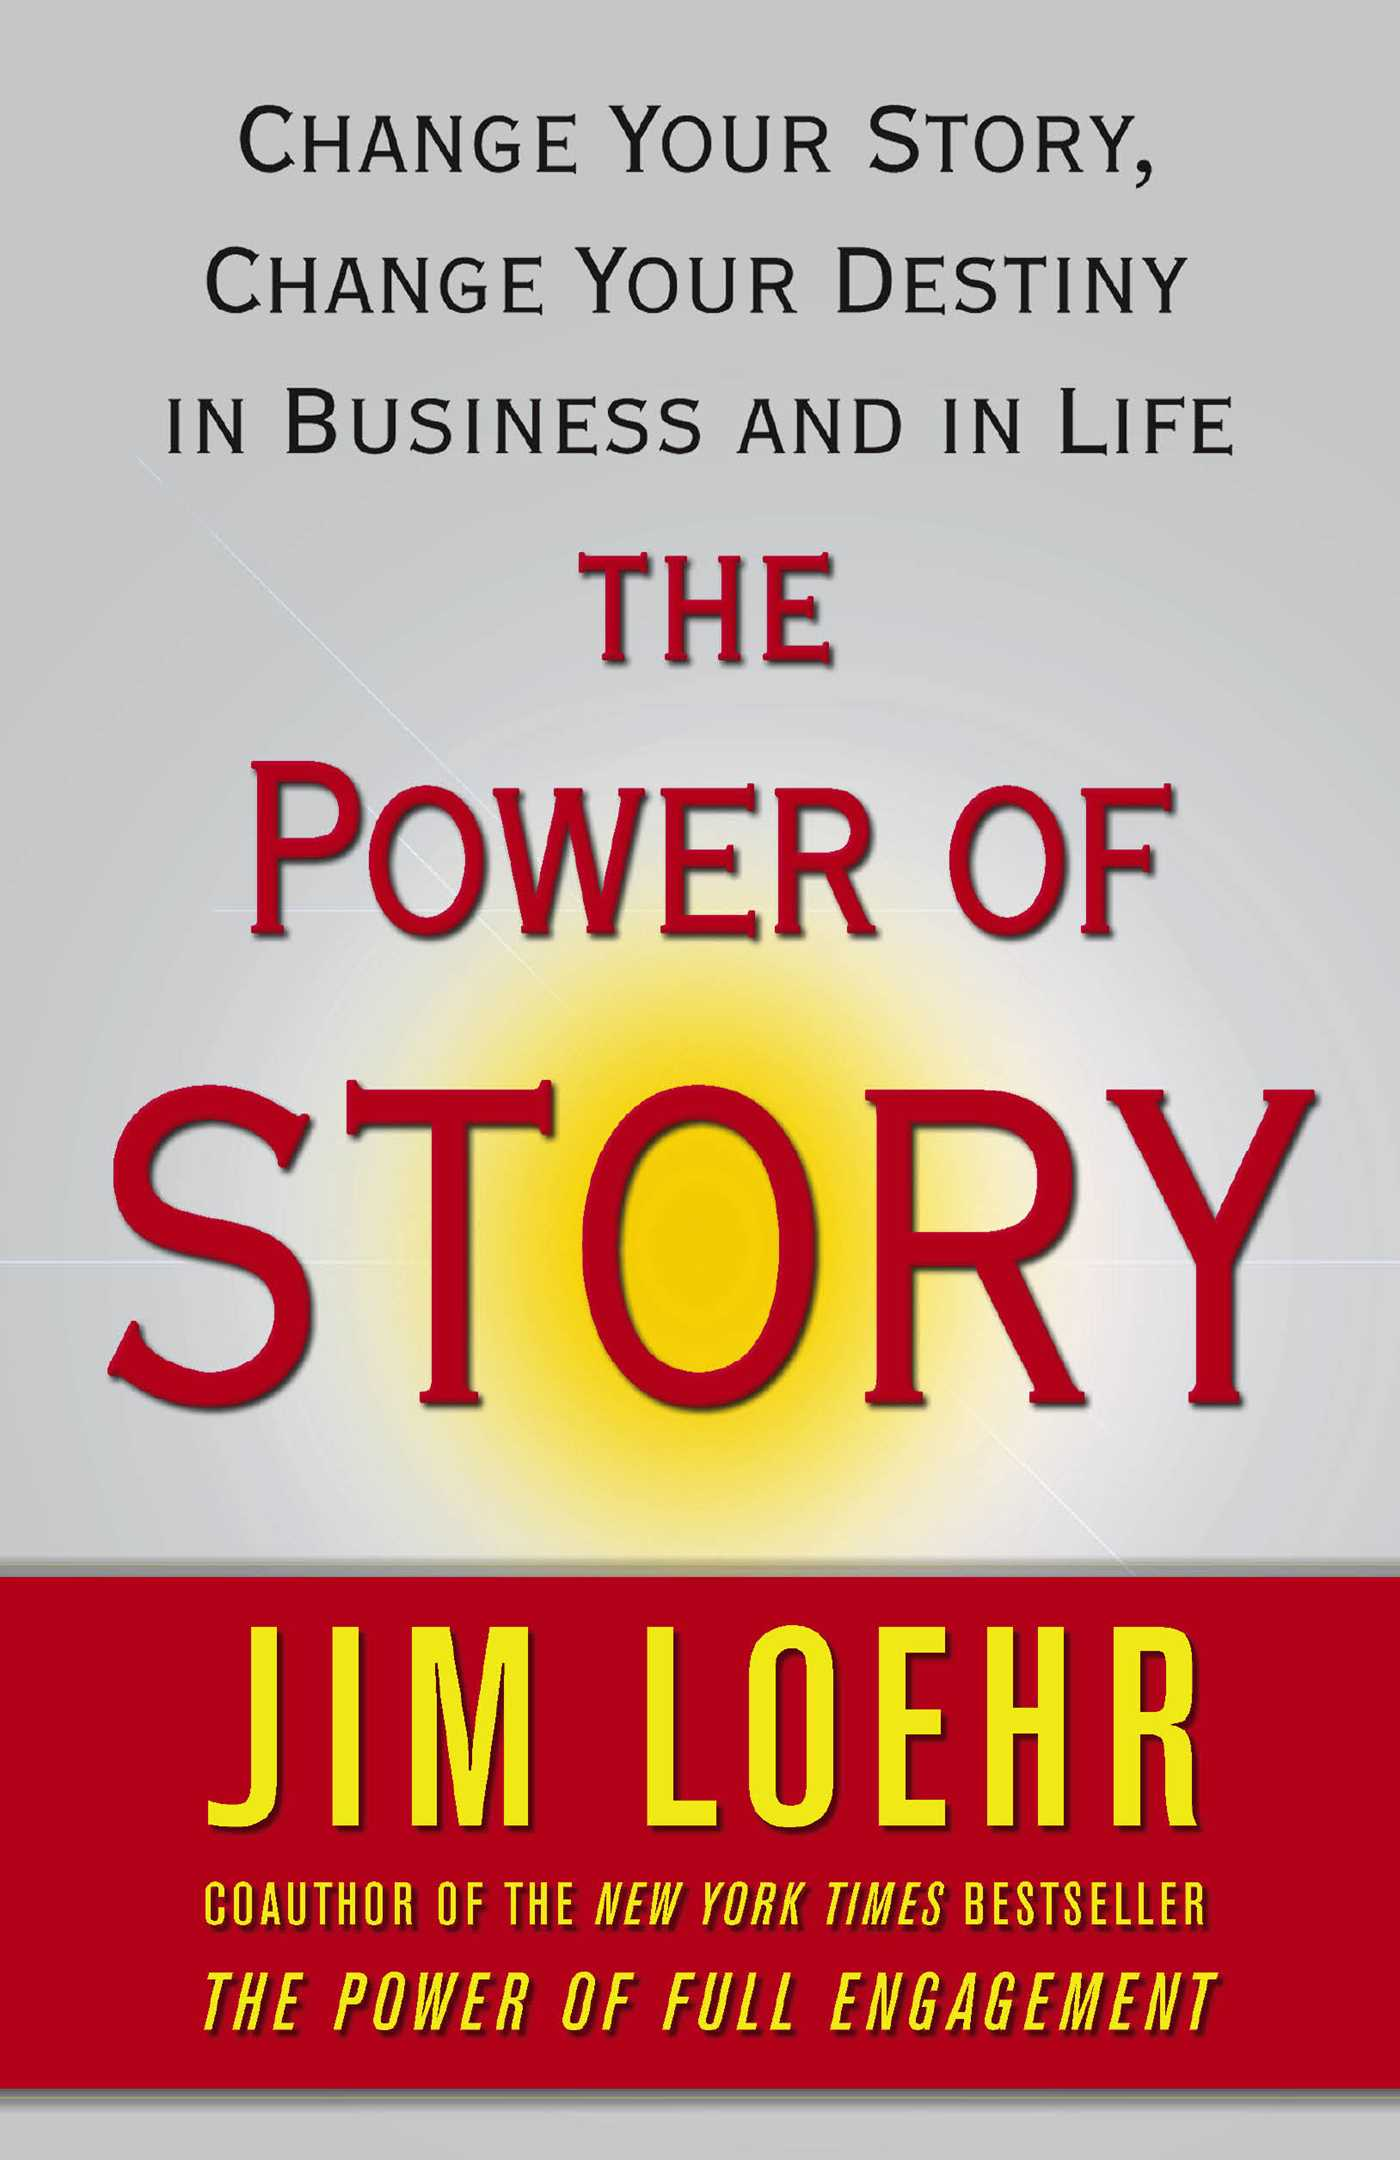 Download Ebook The Power of Story by Jim Loehr Pdf